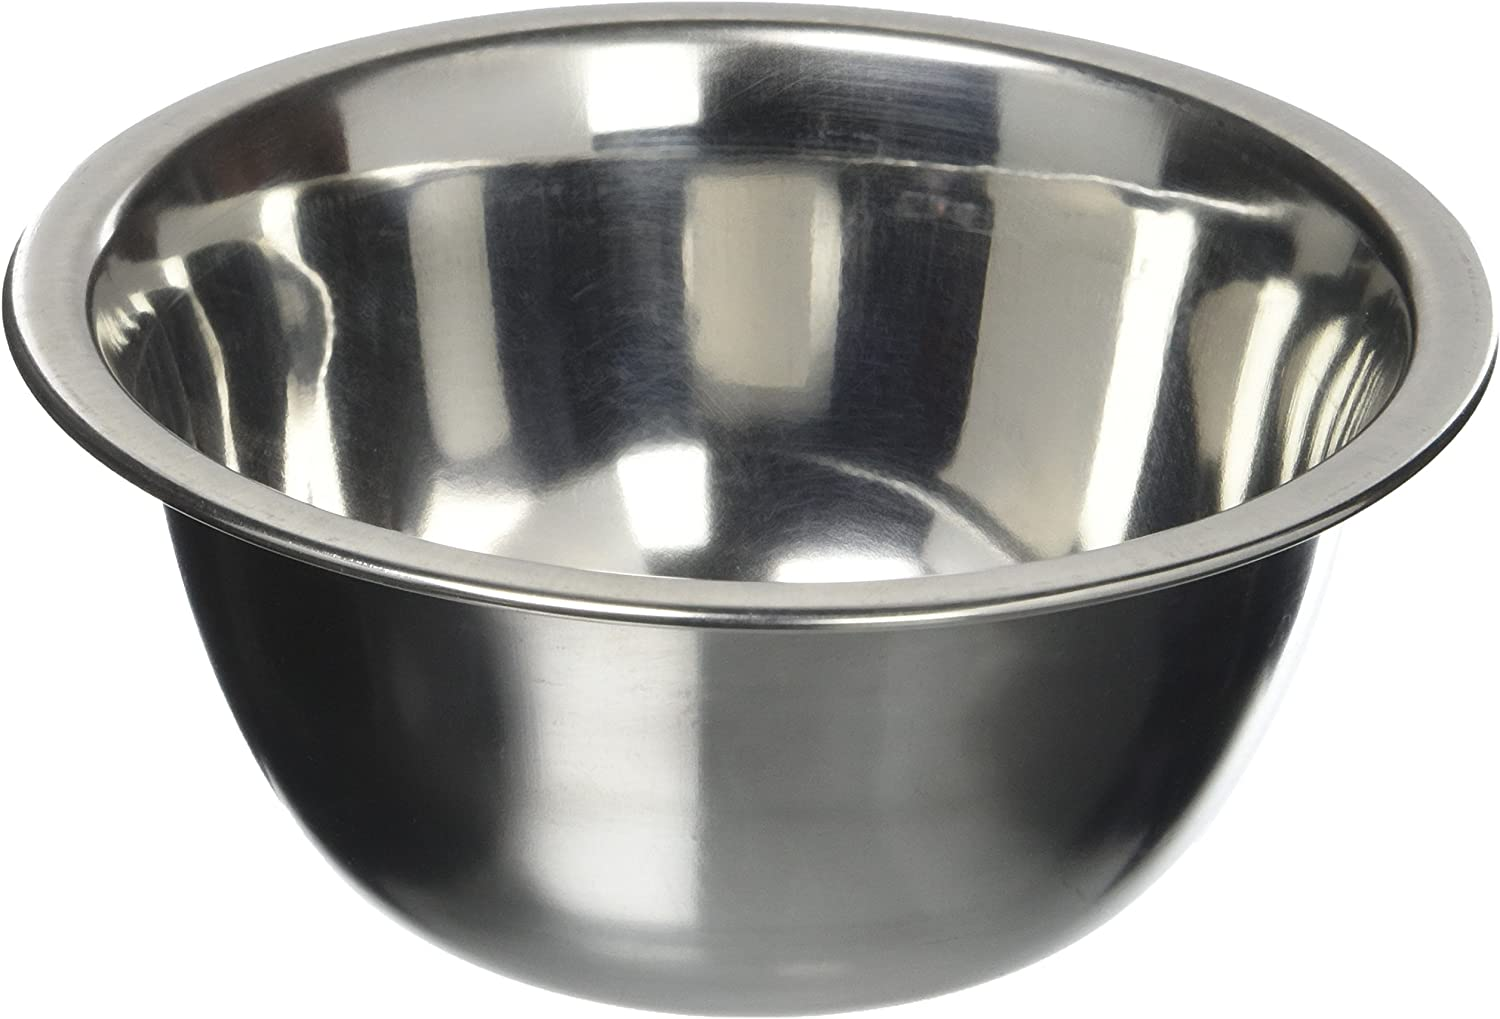 Silver IBILI Bowl 12 cm of Stainless Steel